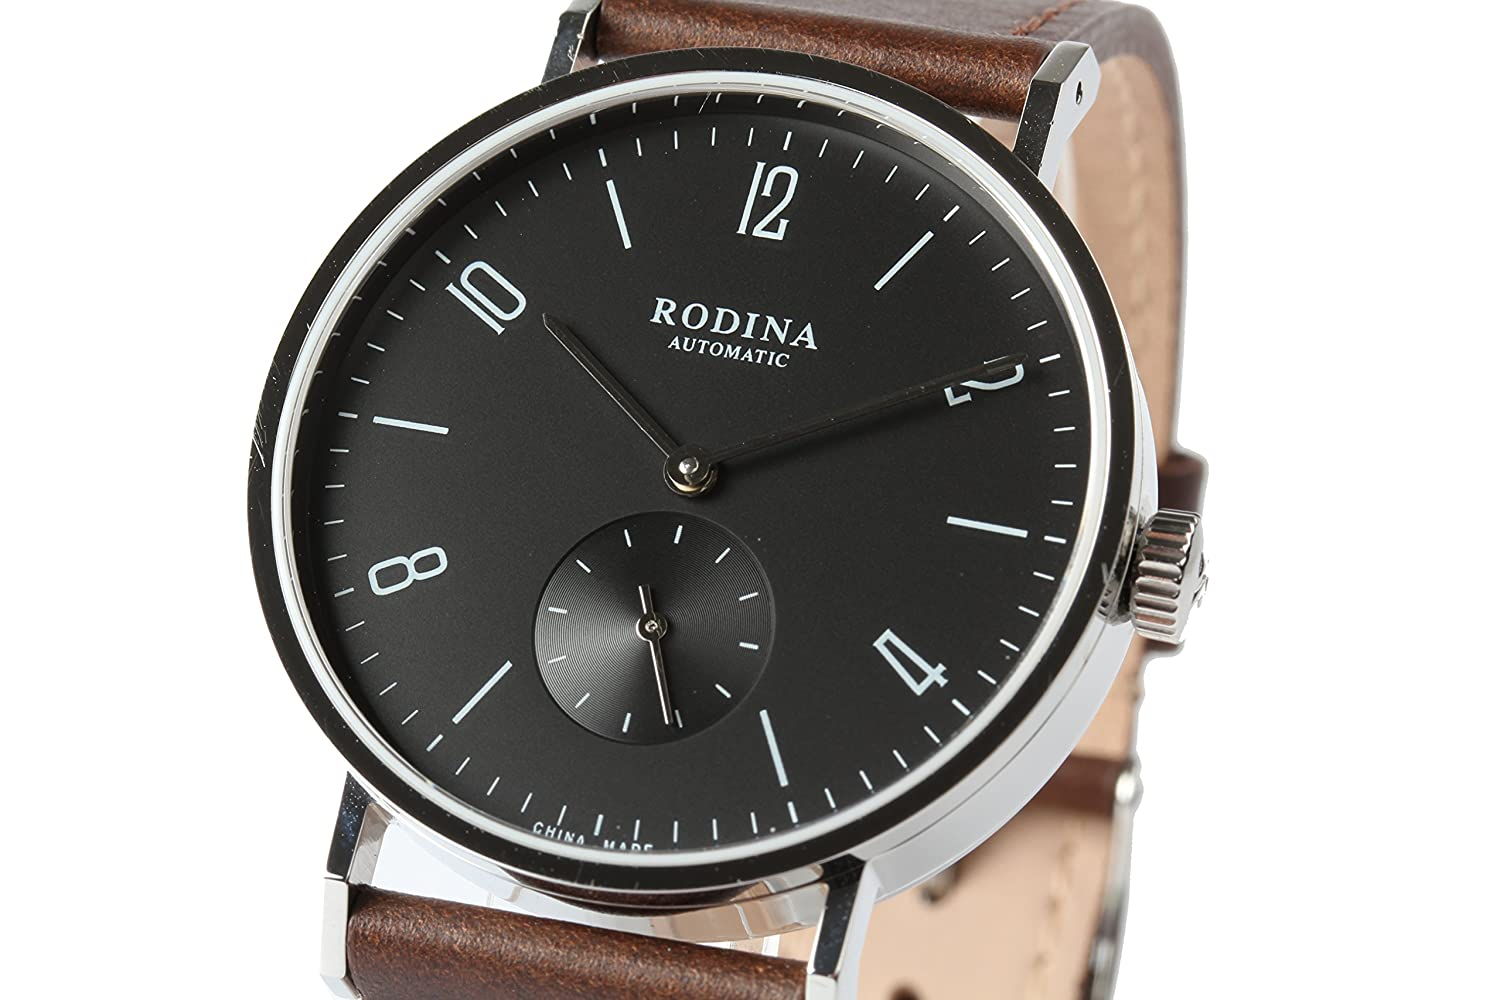 review bauhaus it watches about rodina all watch